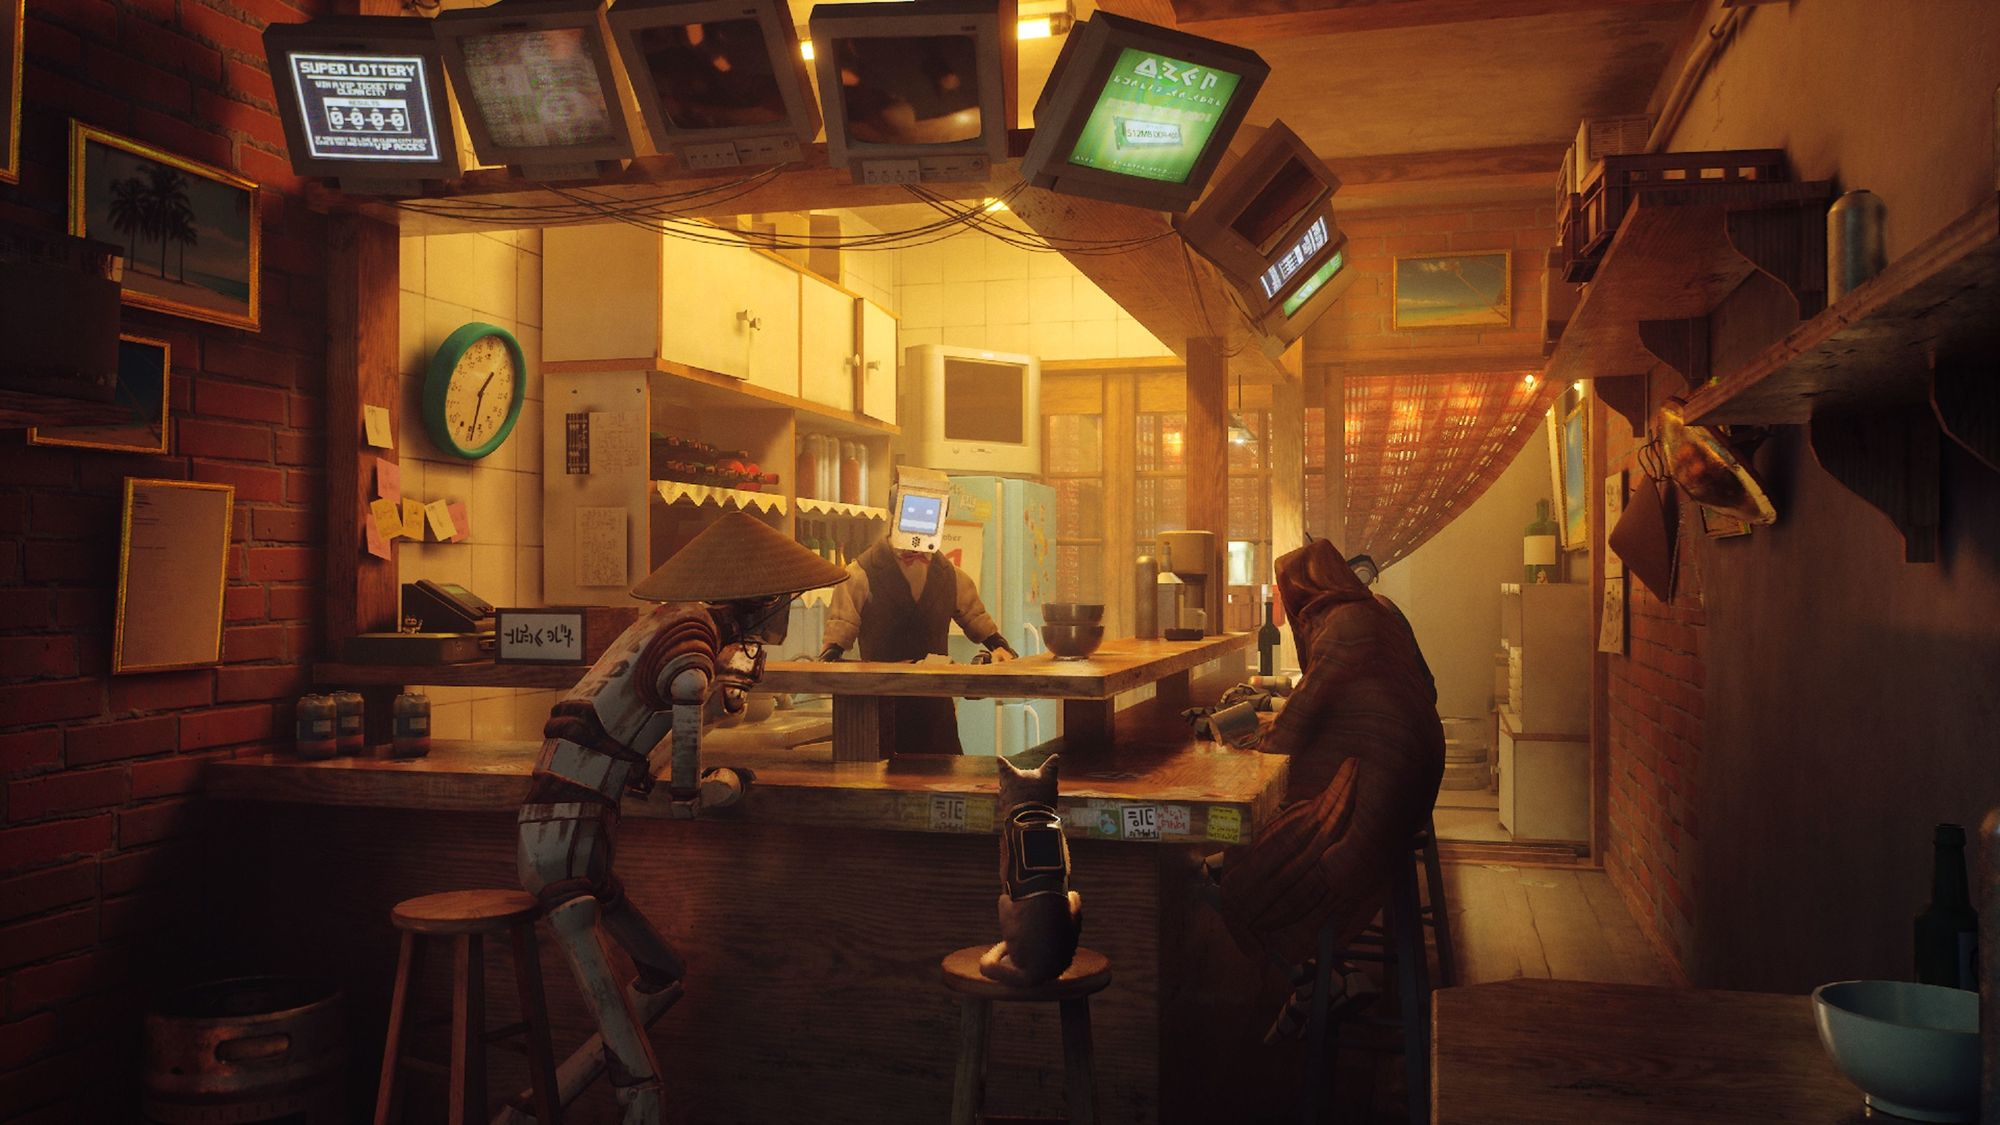 A small cat with a backpack on, sitting at a bar with two robots. The bar is a little worn down but feels a bit homey.